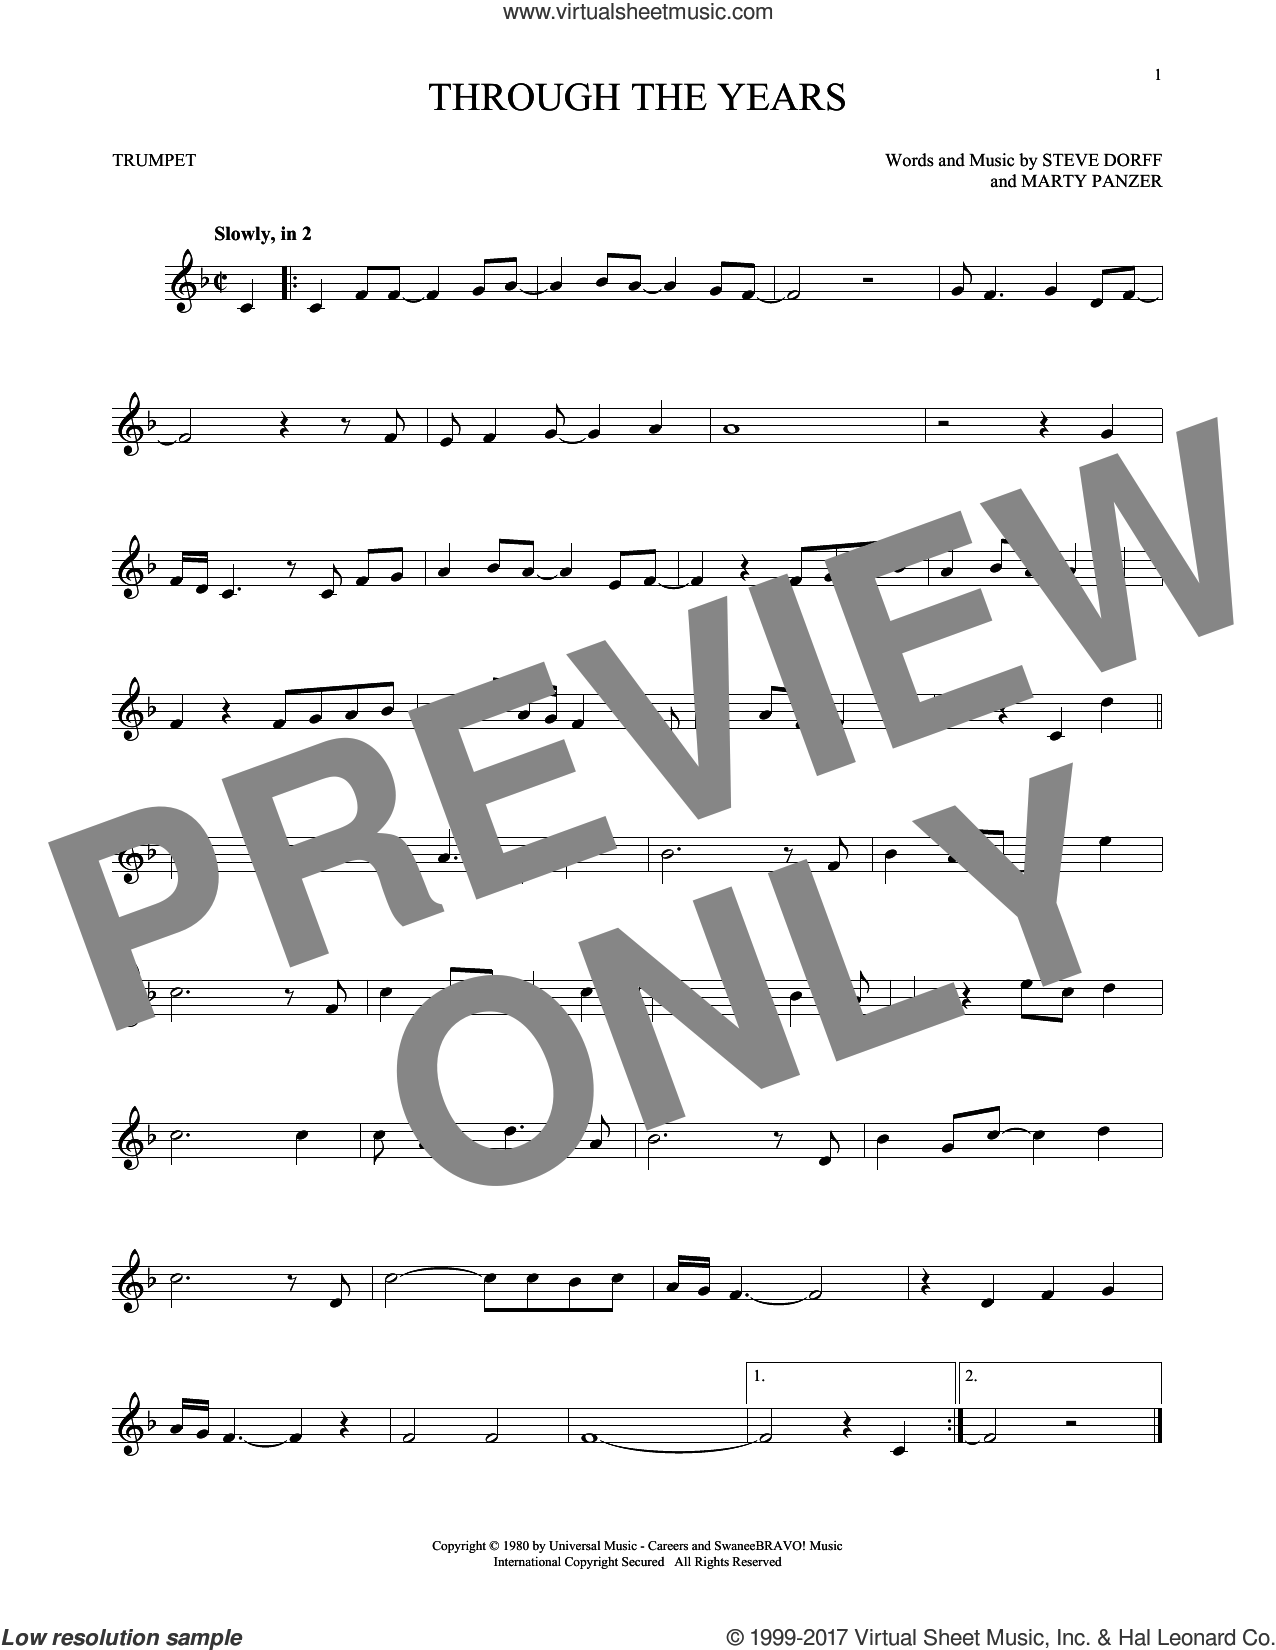 Through The Years sheet music for trumpet solo by Kenny Rogers, Marty Panzer and Steve Dorff, intermediate skill level